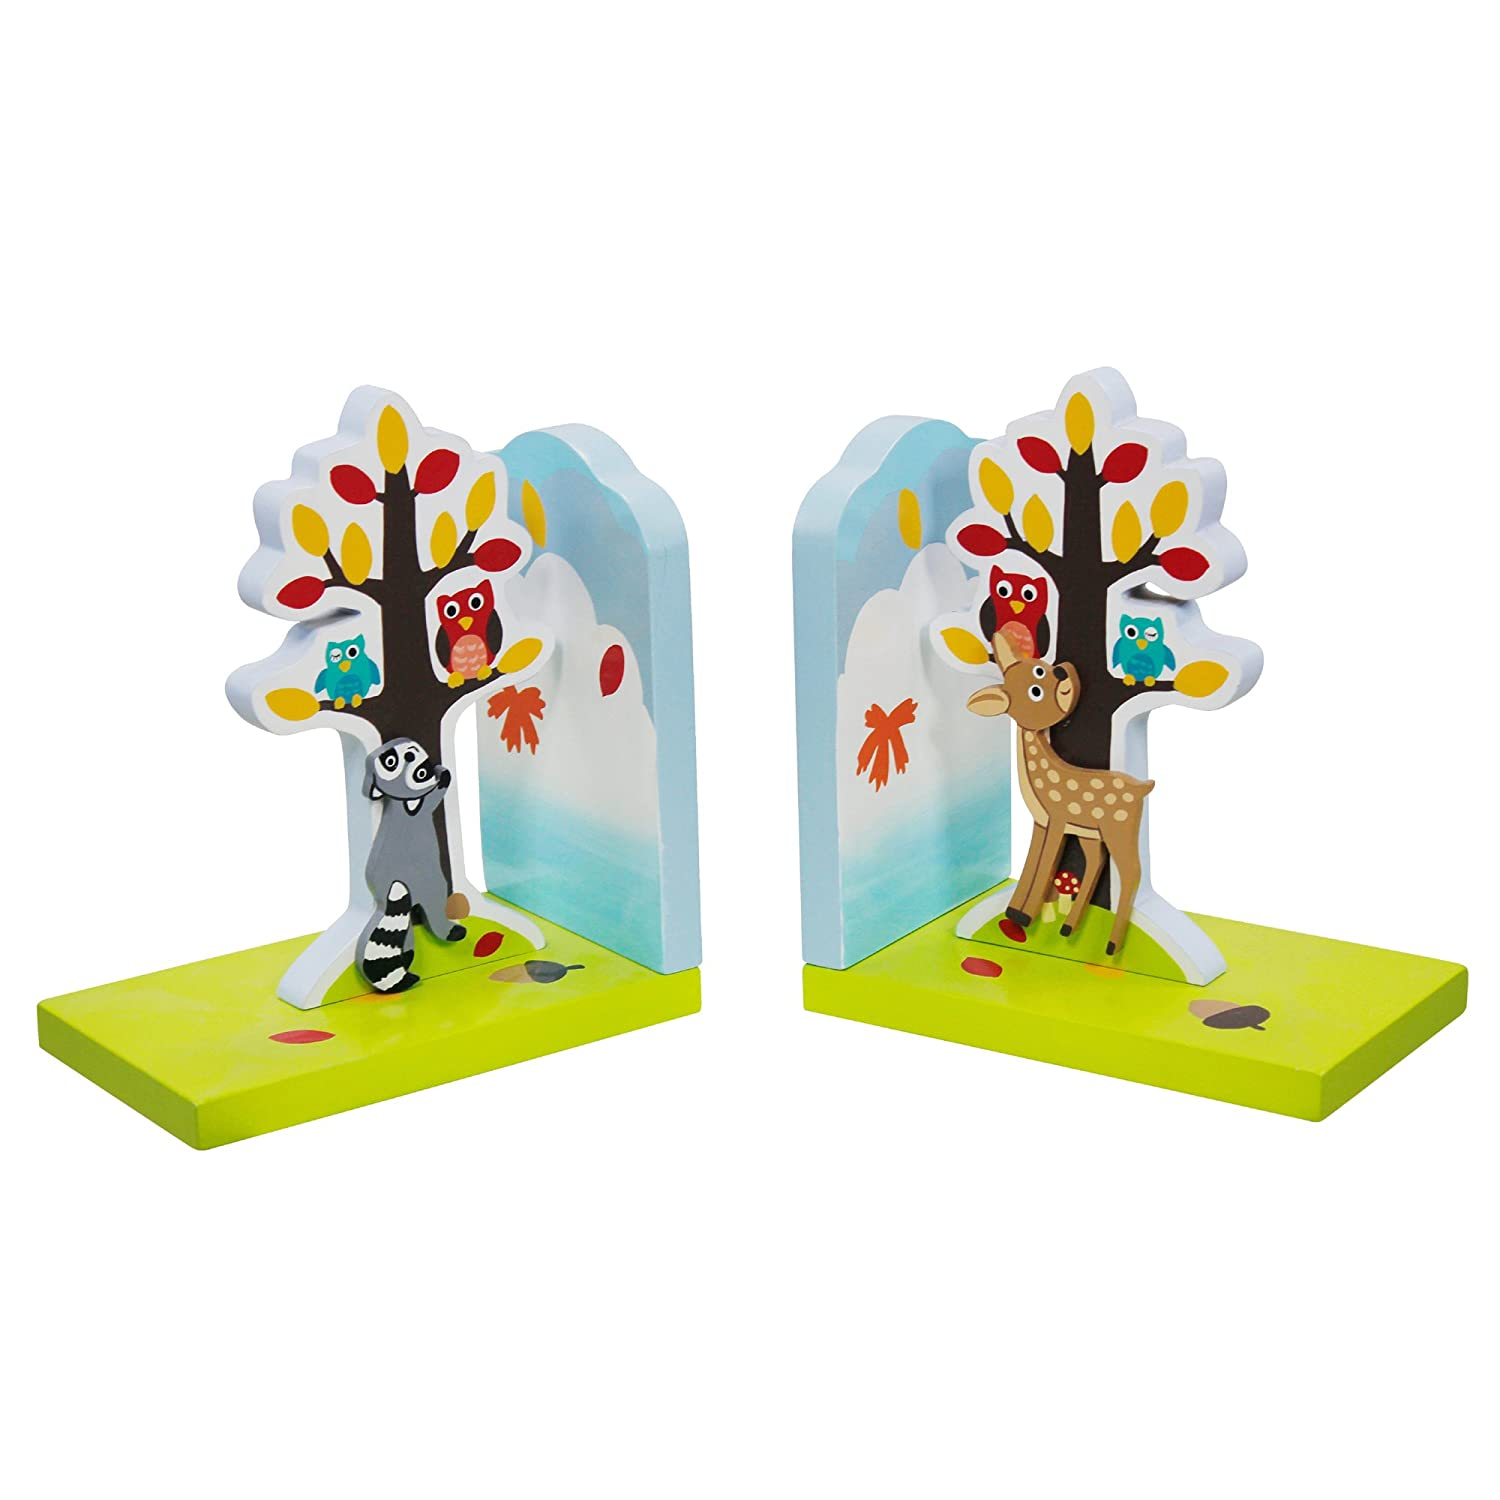 Fantasy Fields - Enchanted Woodland themed Set of 2 Wooden Bookends for Kids | Hand Crafted & Hand Painted Book Ends | Child Friendly Water-based Paint Teamson TD-11702A